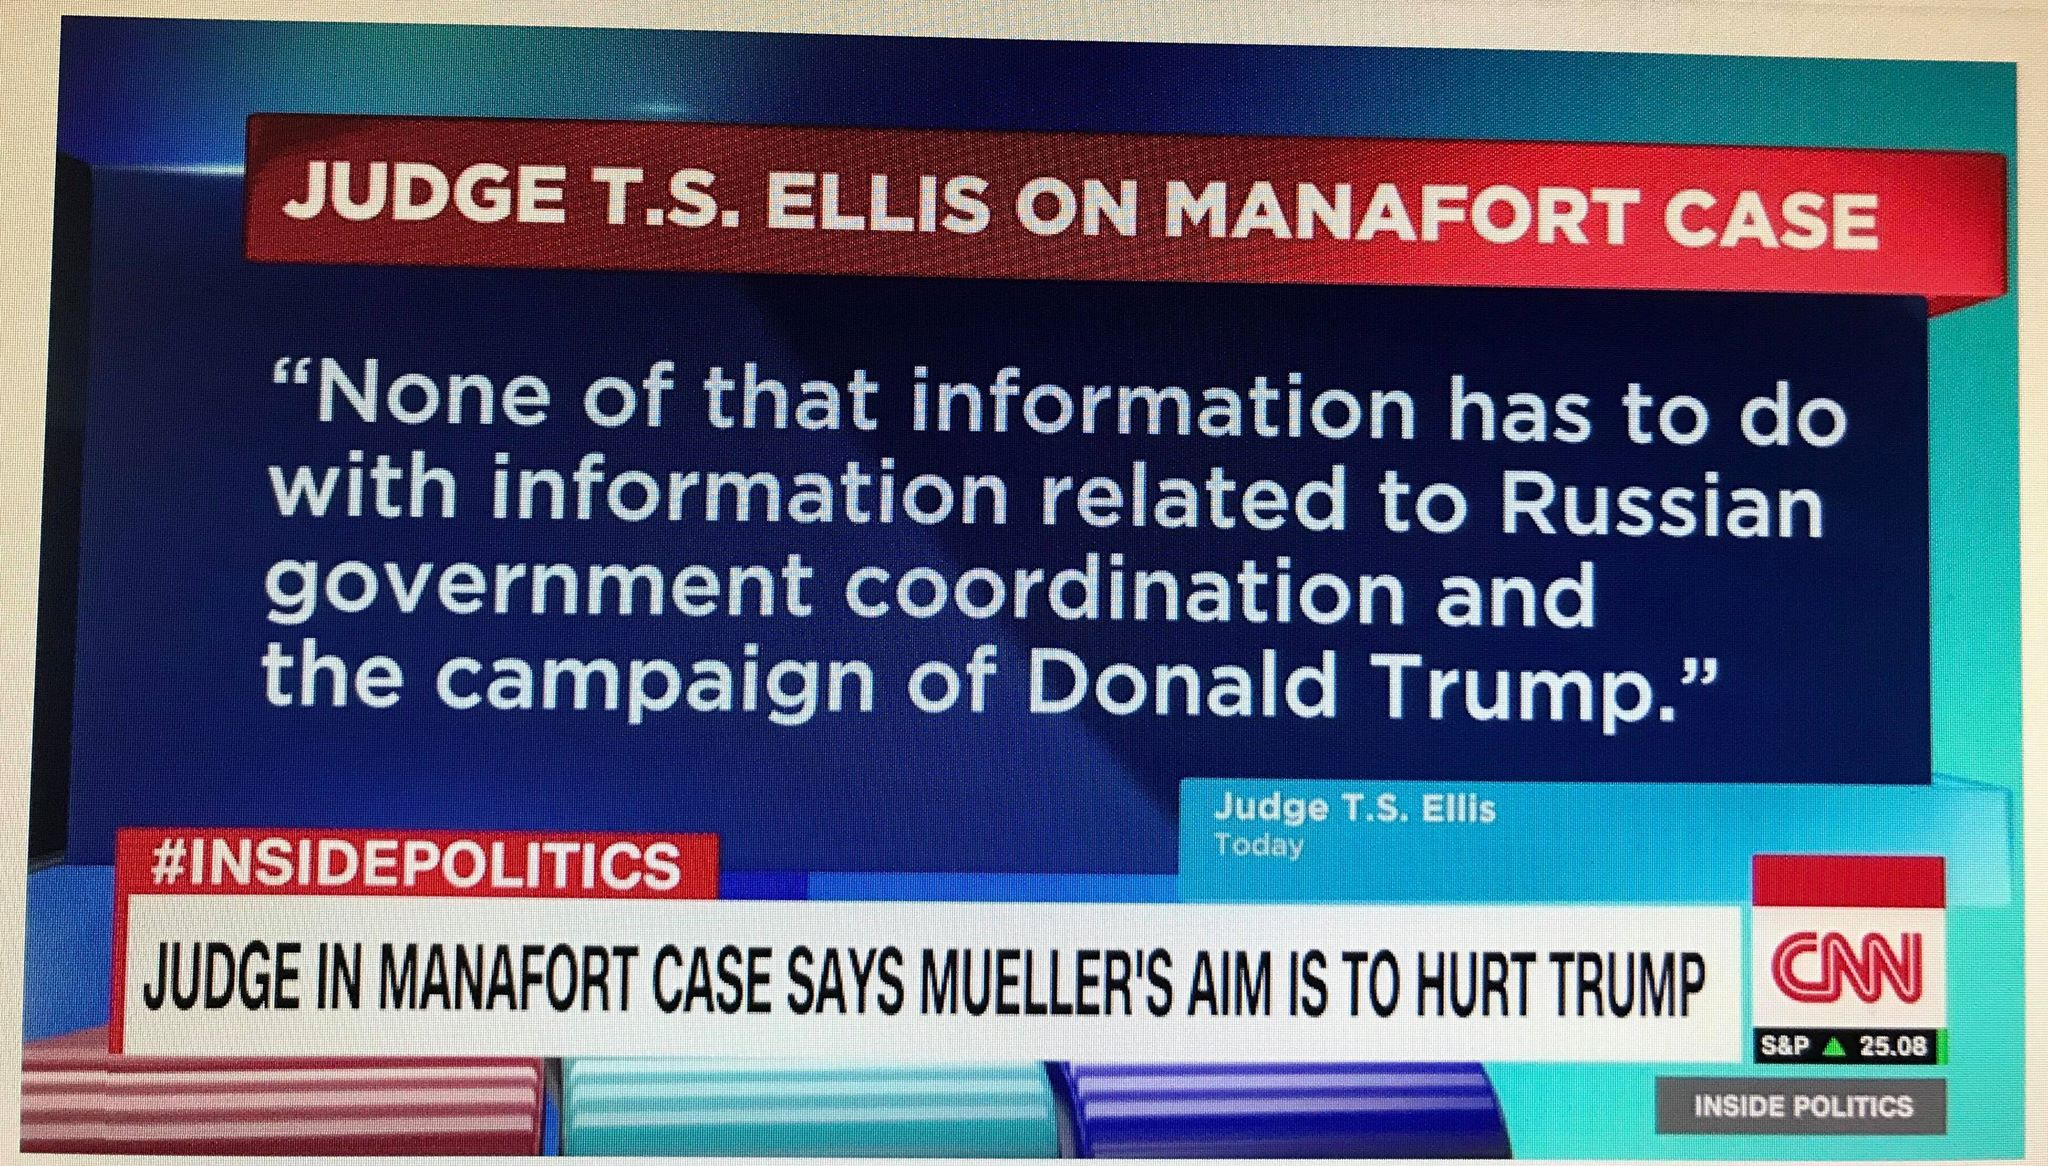 Image credit to US4Trump with CNN Screen capture.